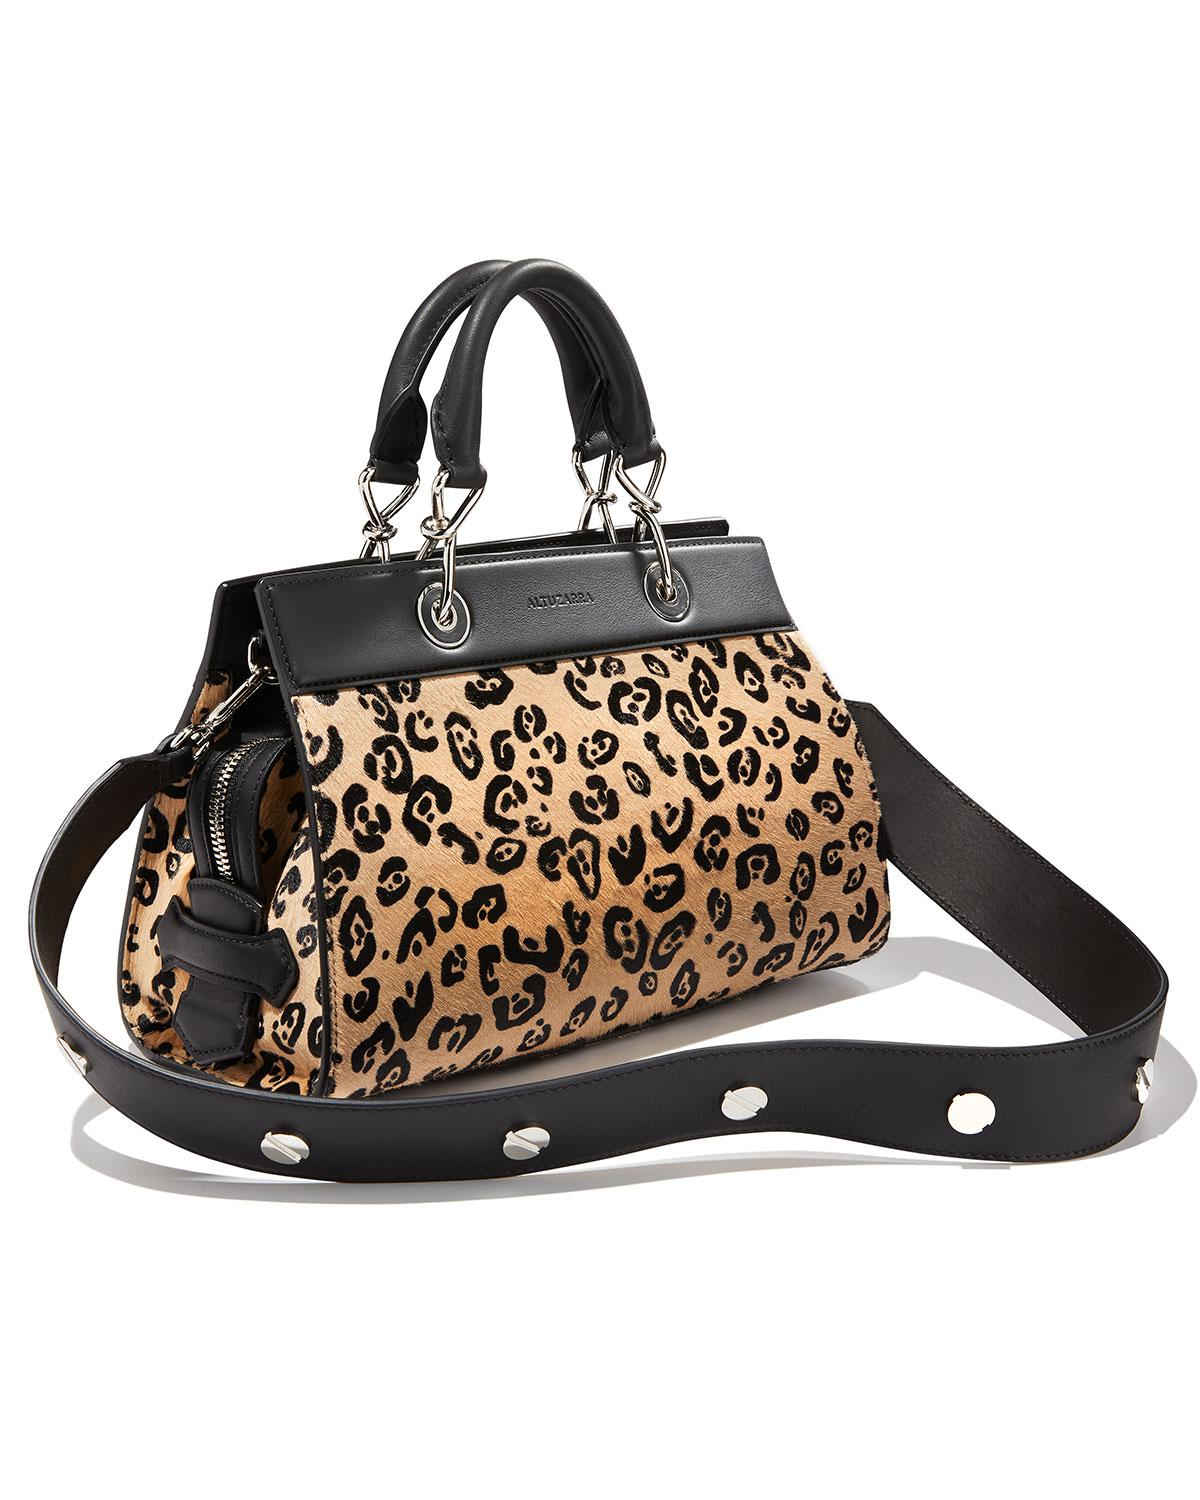 57e54b15848e Lyst - Altuzarra Shadow Small Leopard-print Tote Bag in Black